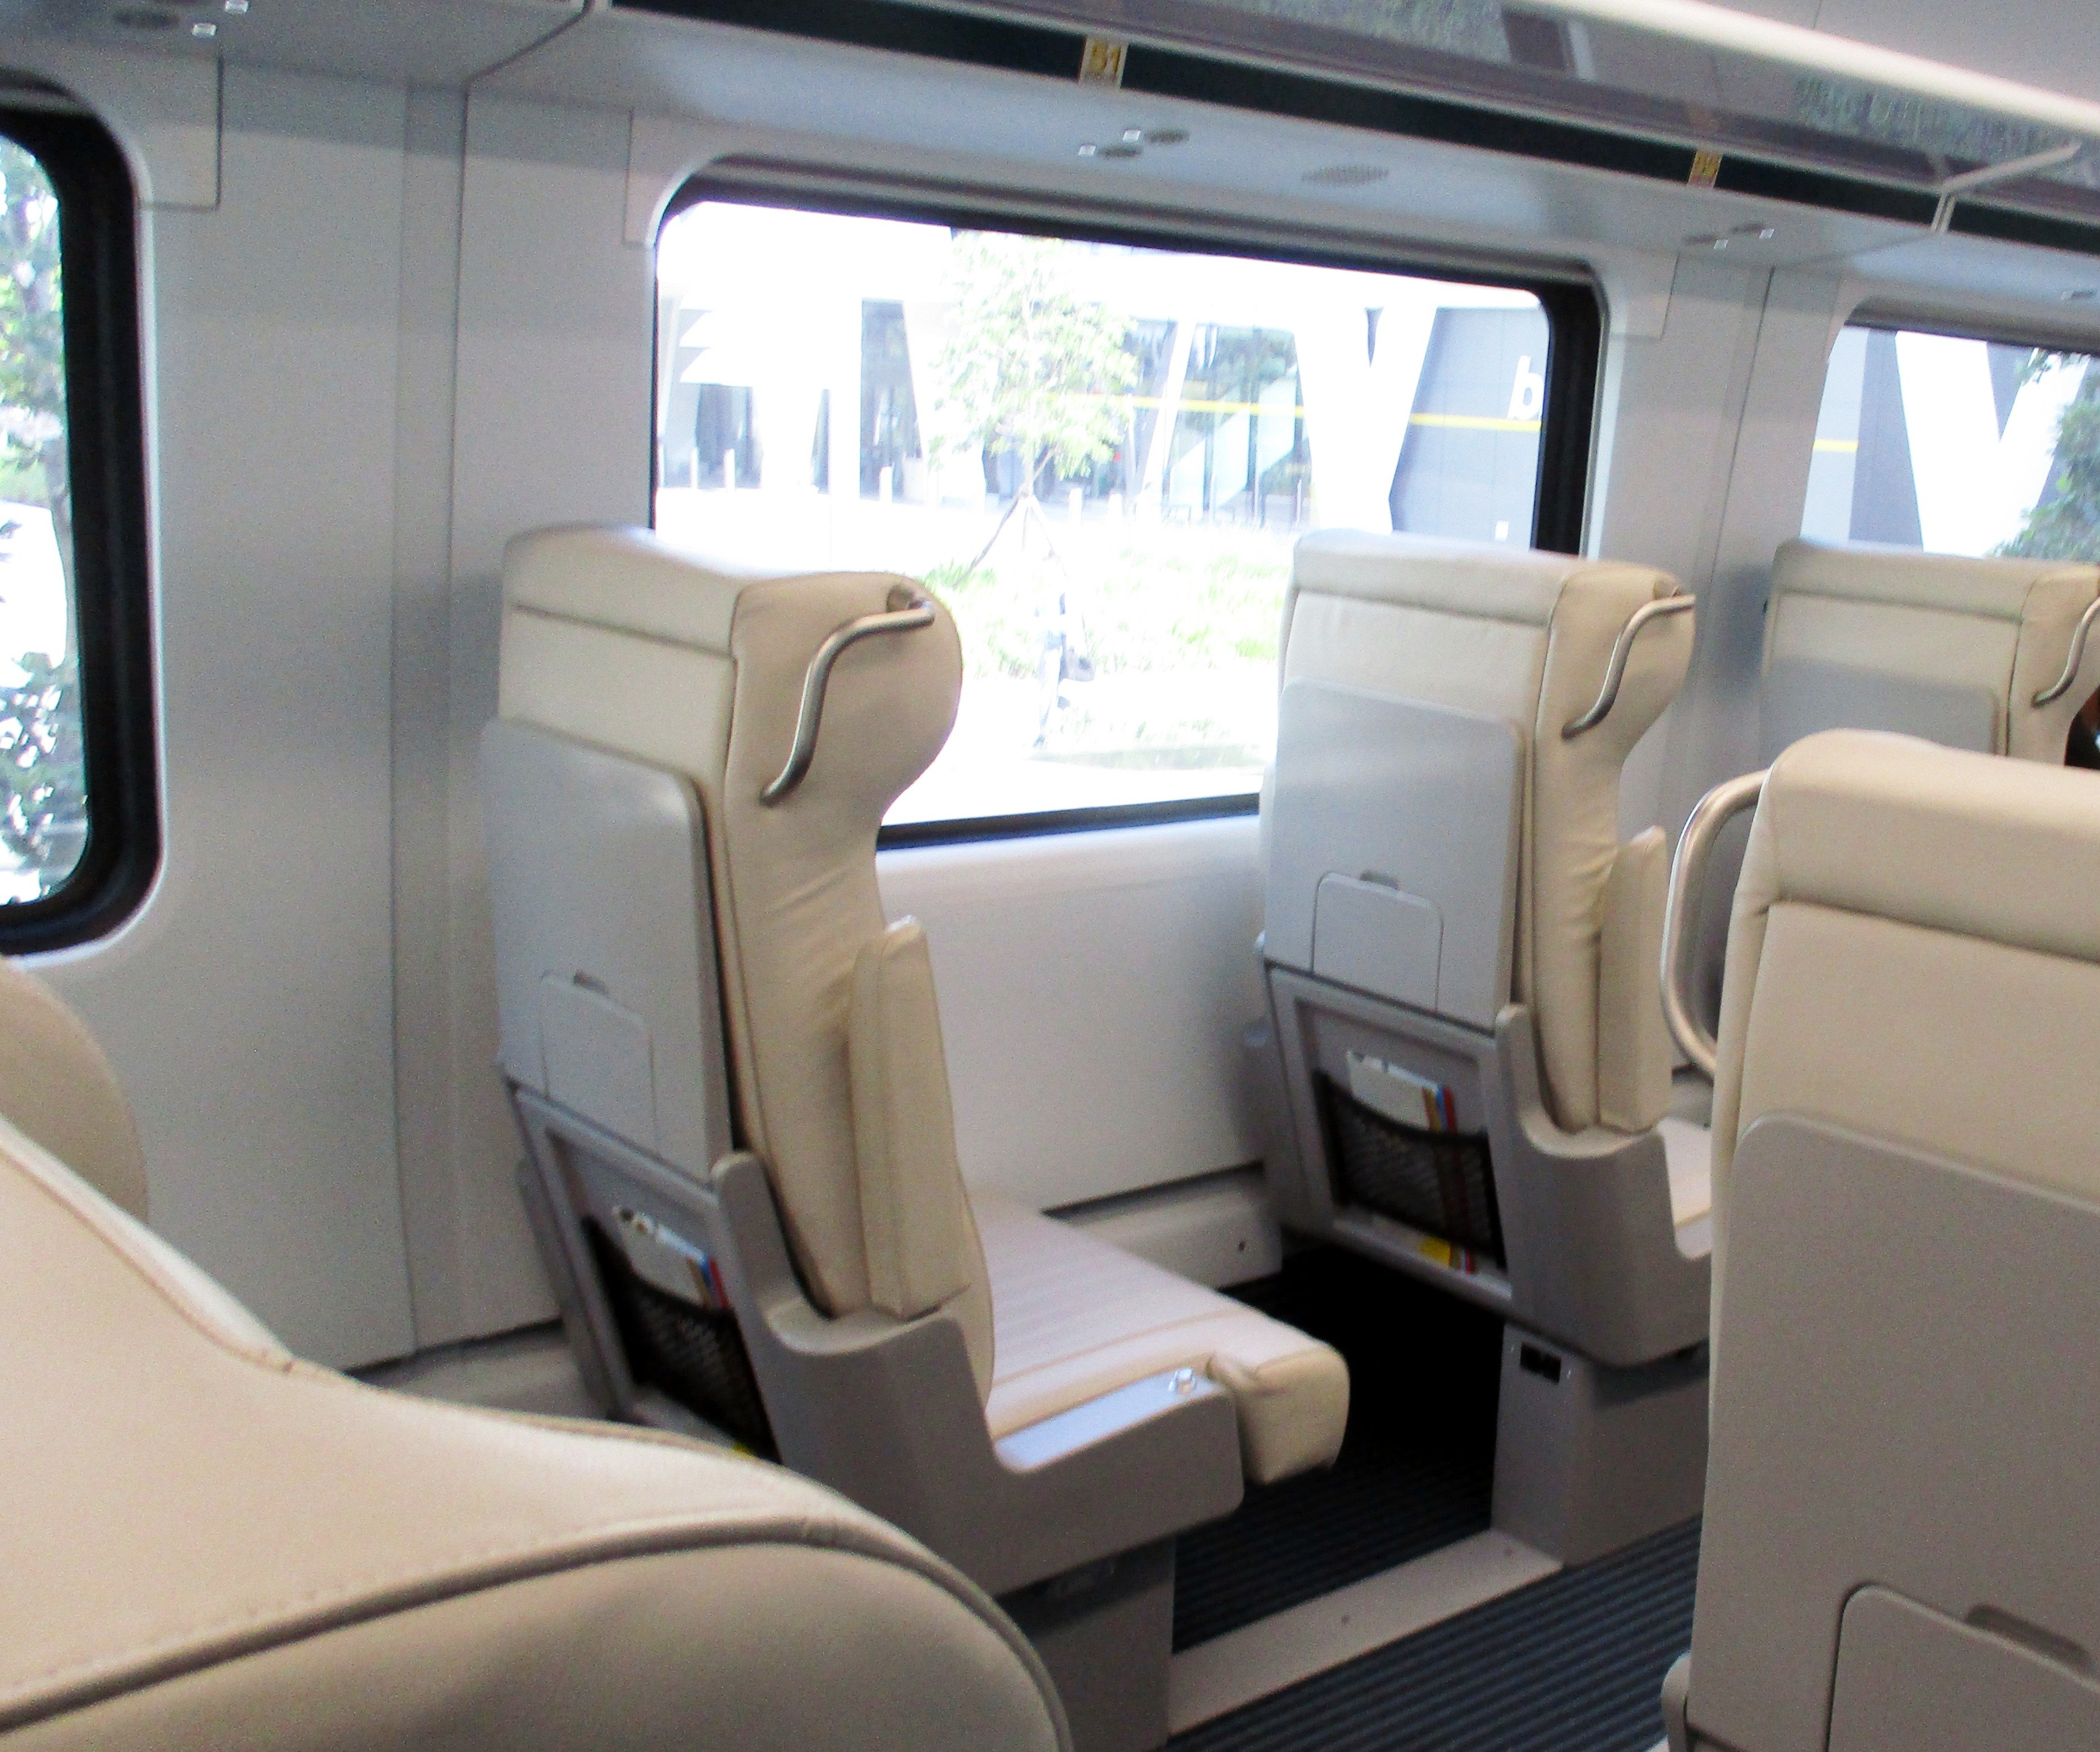 View to the single row of seats along one side of the train.